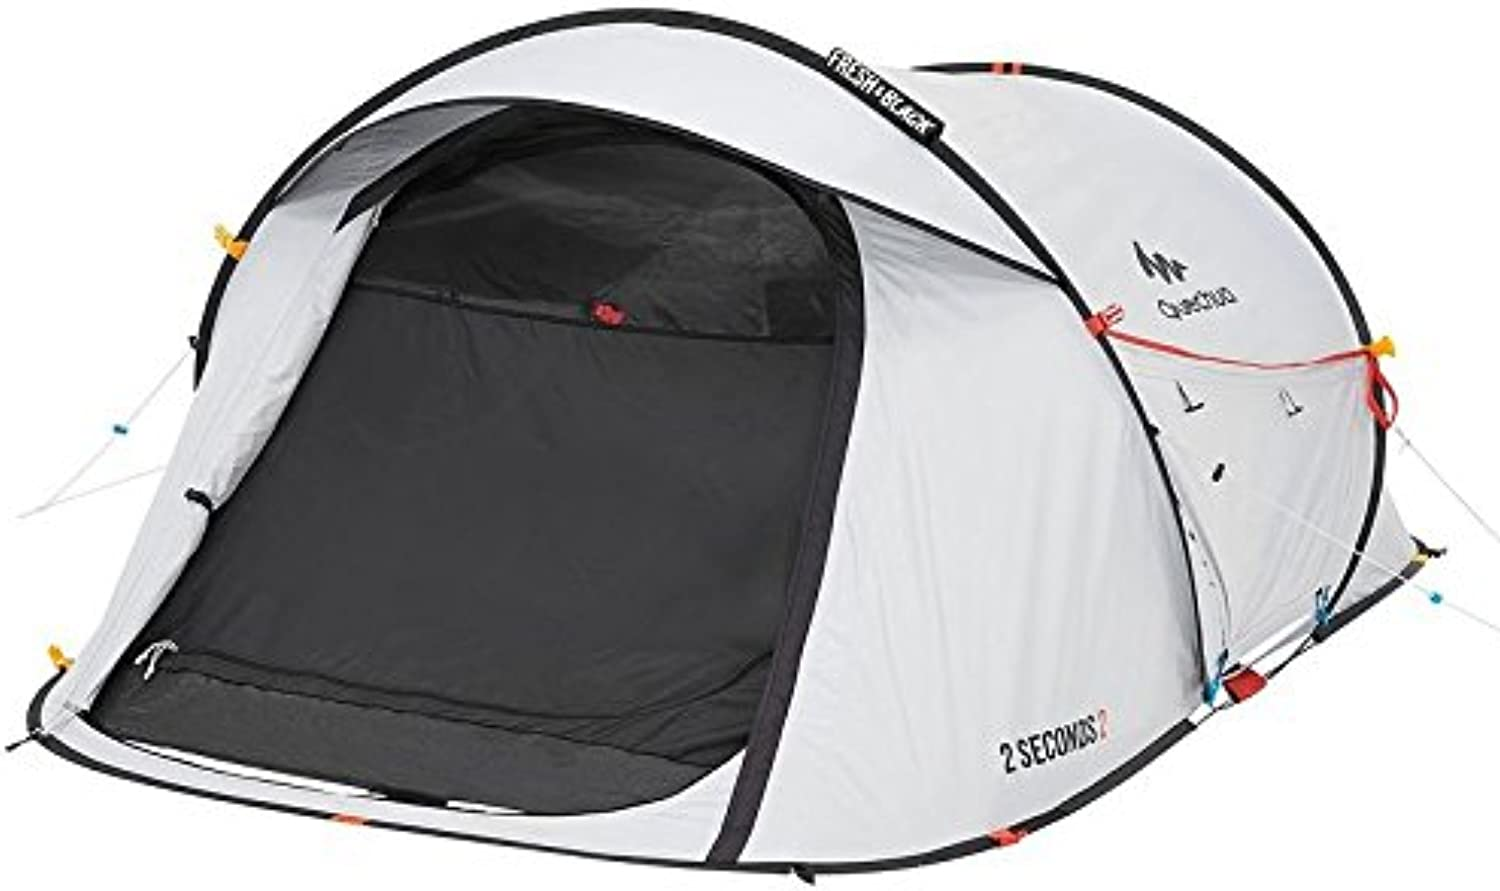 Quechua Waterproof Pop Up Camping Tent 2 Seconds Fresh & Black Easy Set Up and Fold  Extra Dark Interior